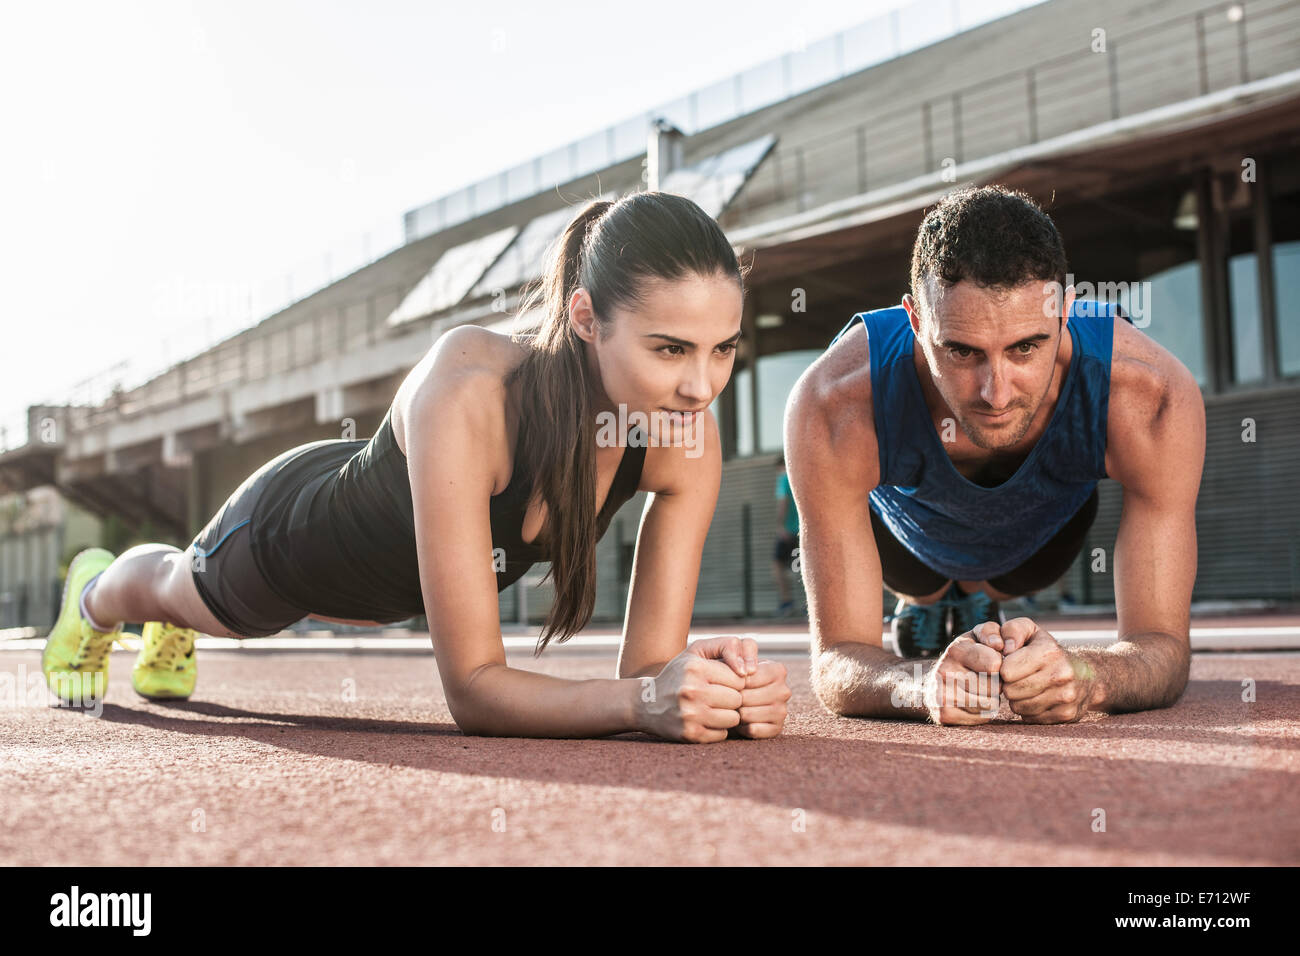 Man and woman doing plank exercises - Stock Image